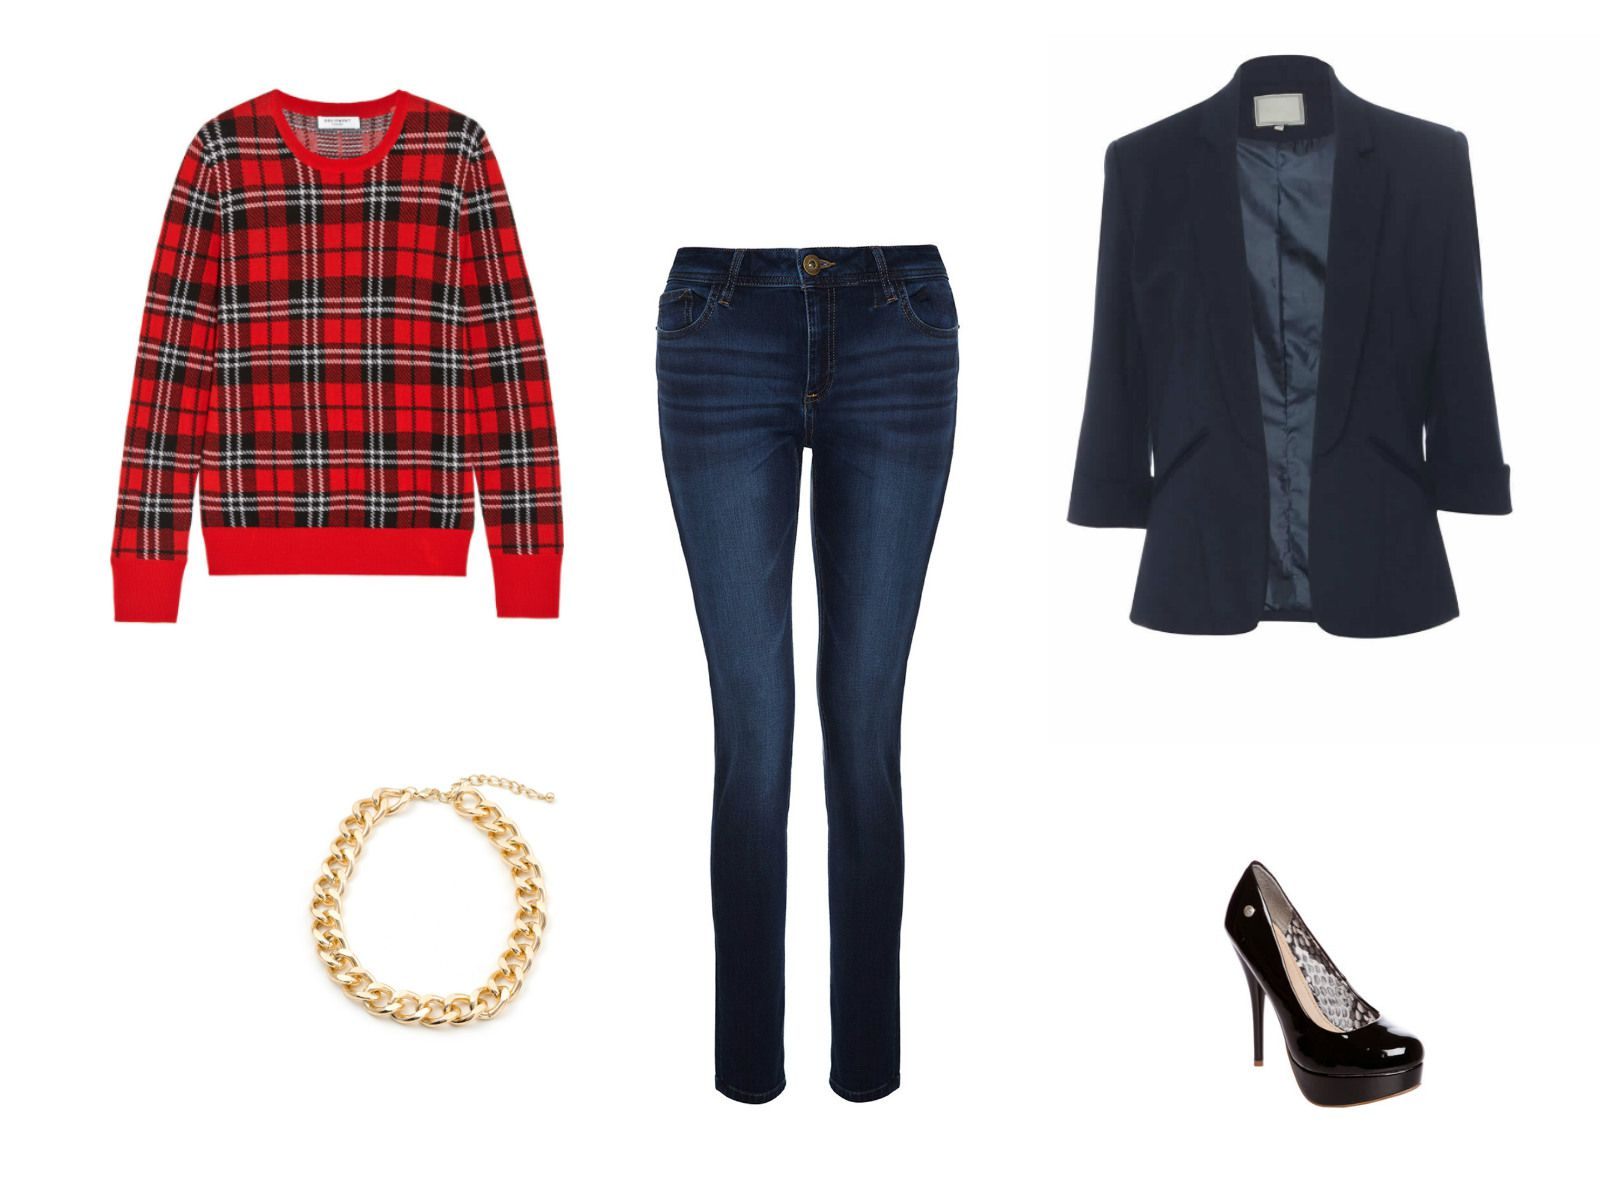 How To Wear Jeans And A Plaid Shirt Outfit Ideas